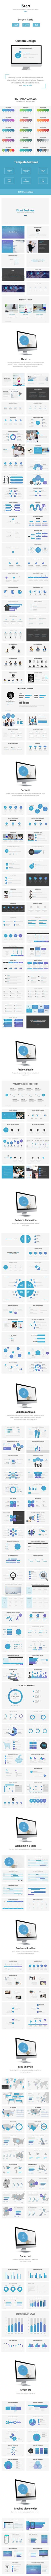 iStart Presentation Template - Business PowerPoint Templates  Download link: https://graphicriver.net/item/istart-presentation-template/22139147?ref=KlitVogli